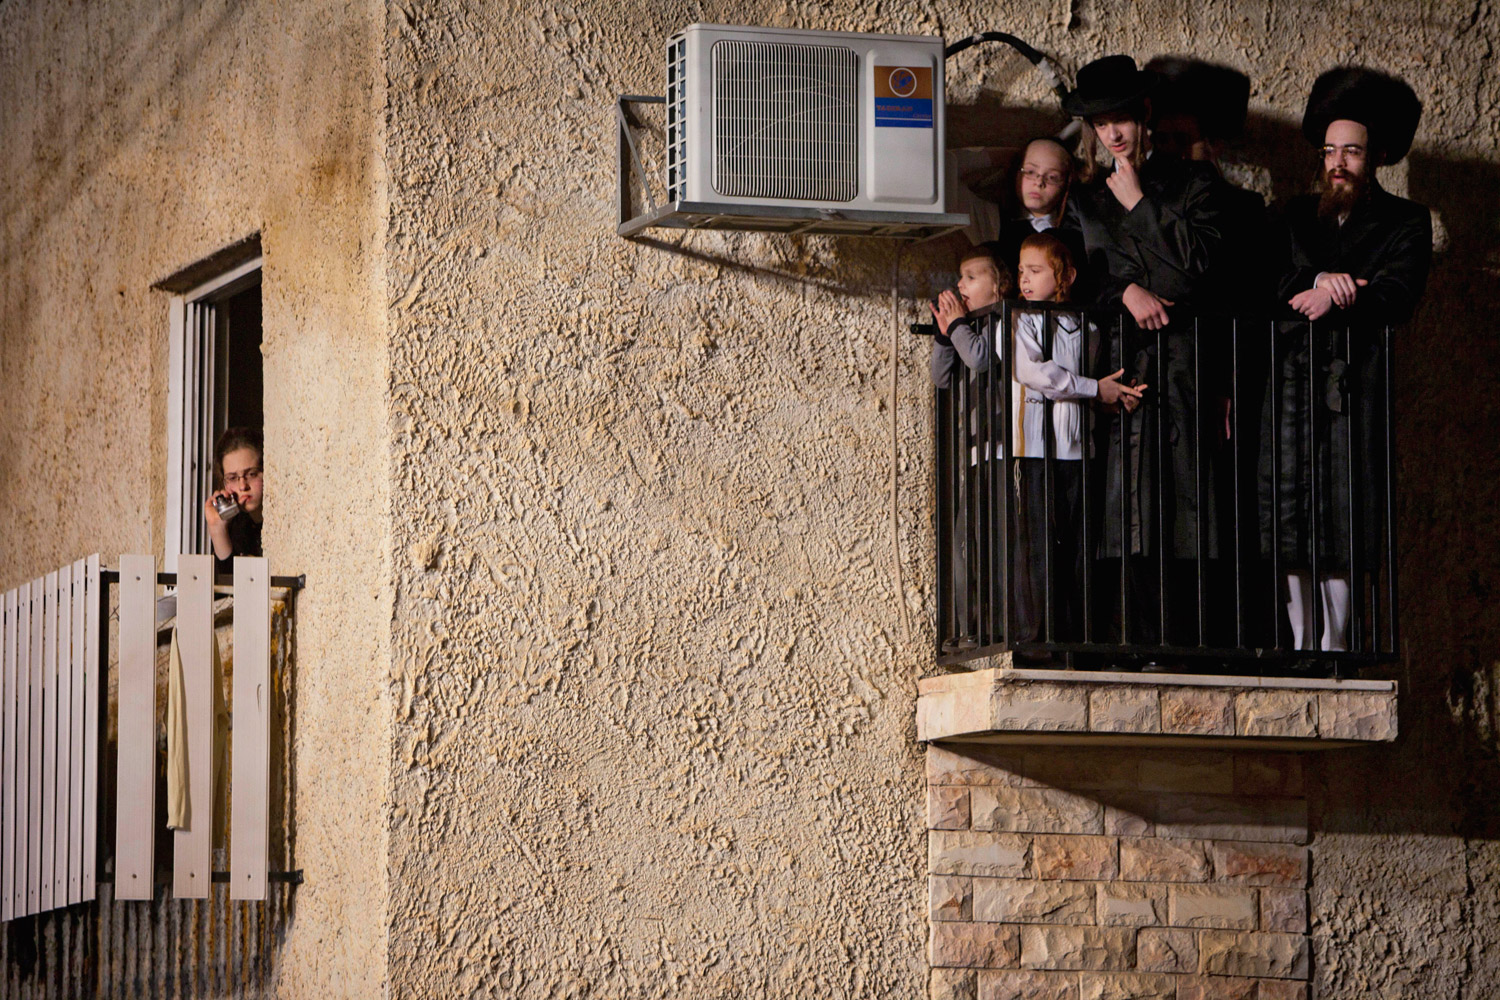 Feb. 14, 2012. Ultra-Orthodox Jews gather for the traditional Jewish wedding of Chananya Yom Tov Lipa, the great-grandson of the Rabbi of the Wiznitz Hasidic followers, in the town of Bnei Brak near Tel Aviv.